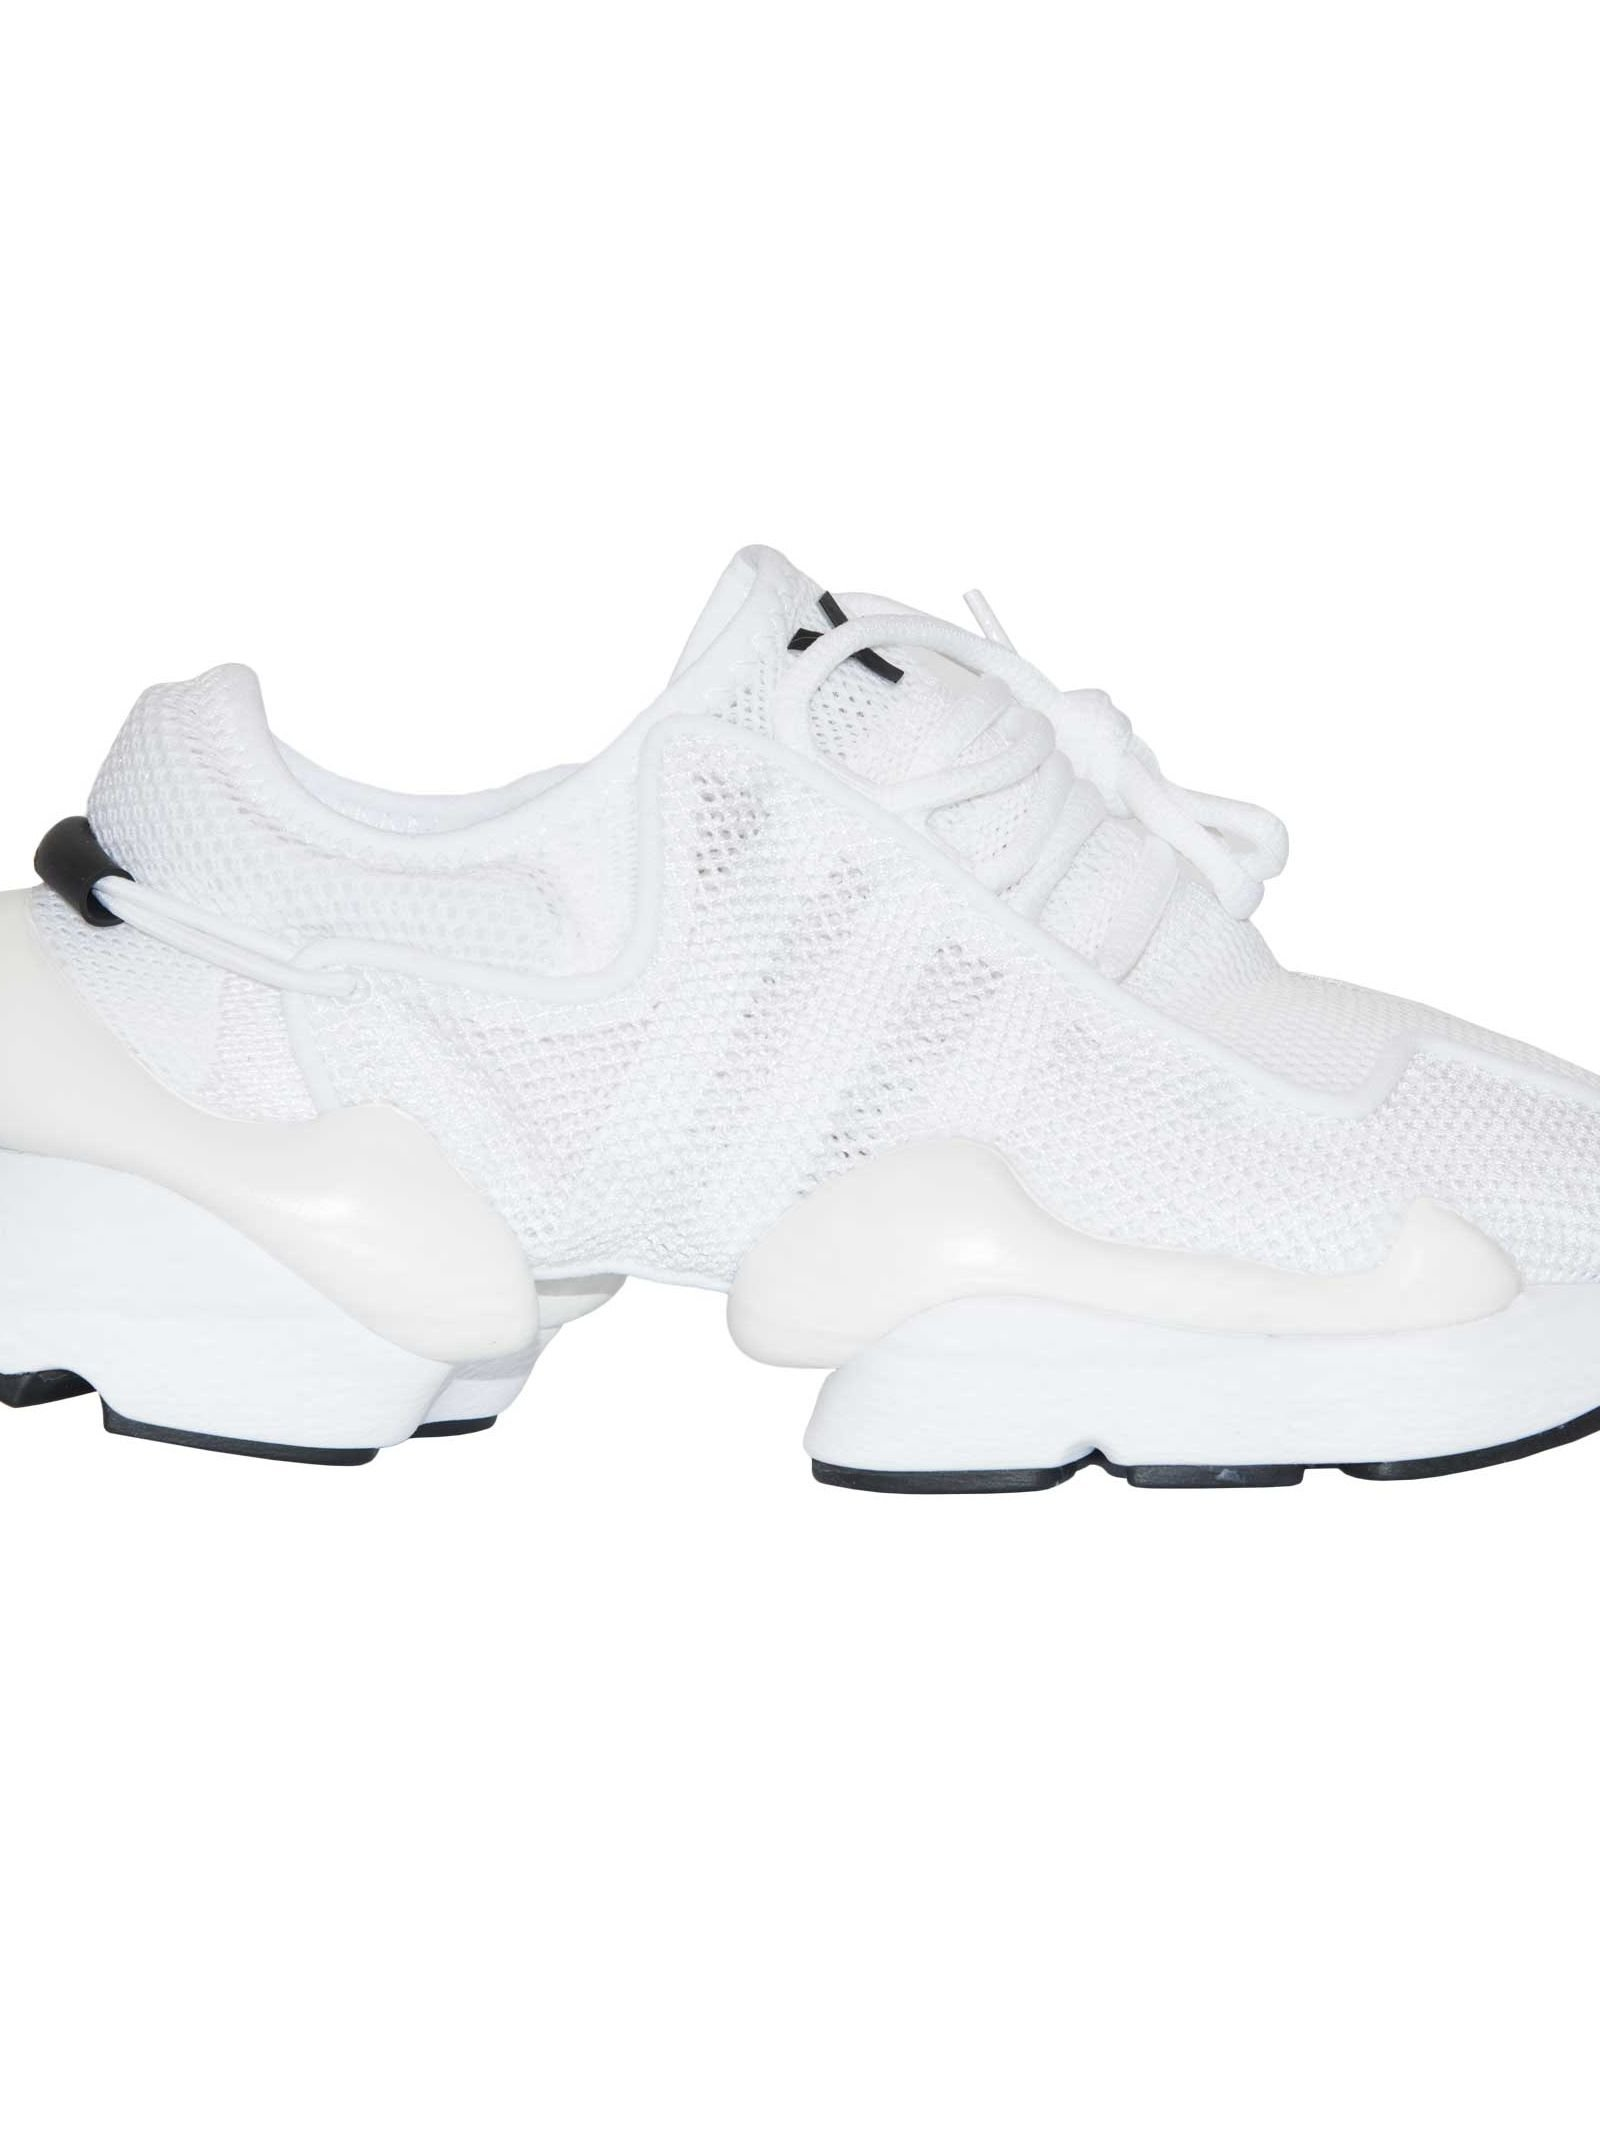 Y-3 Mesh Low Top Sneakers